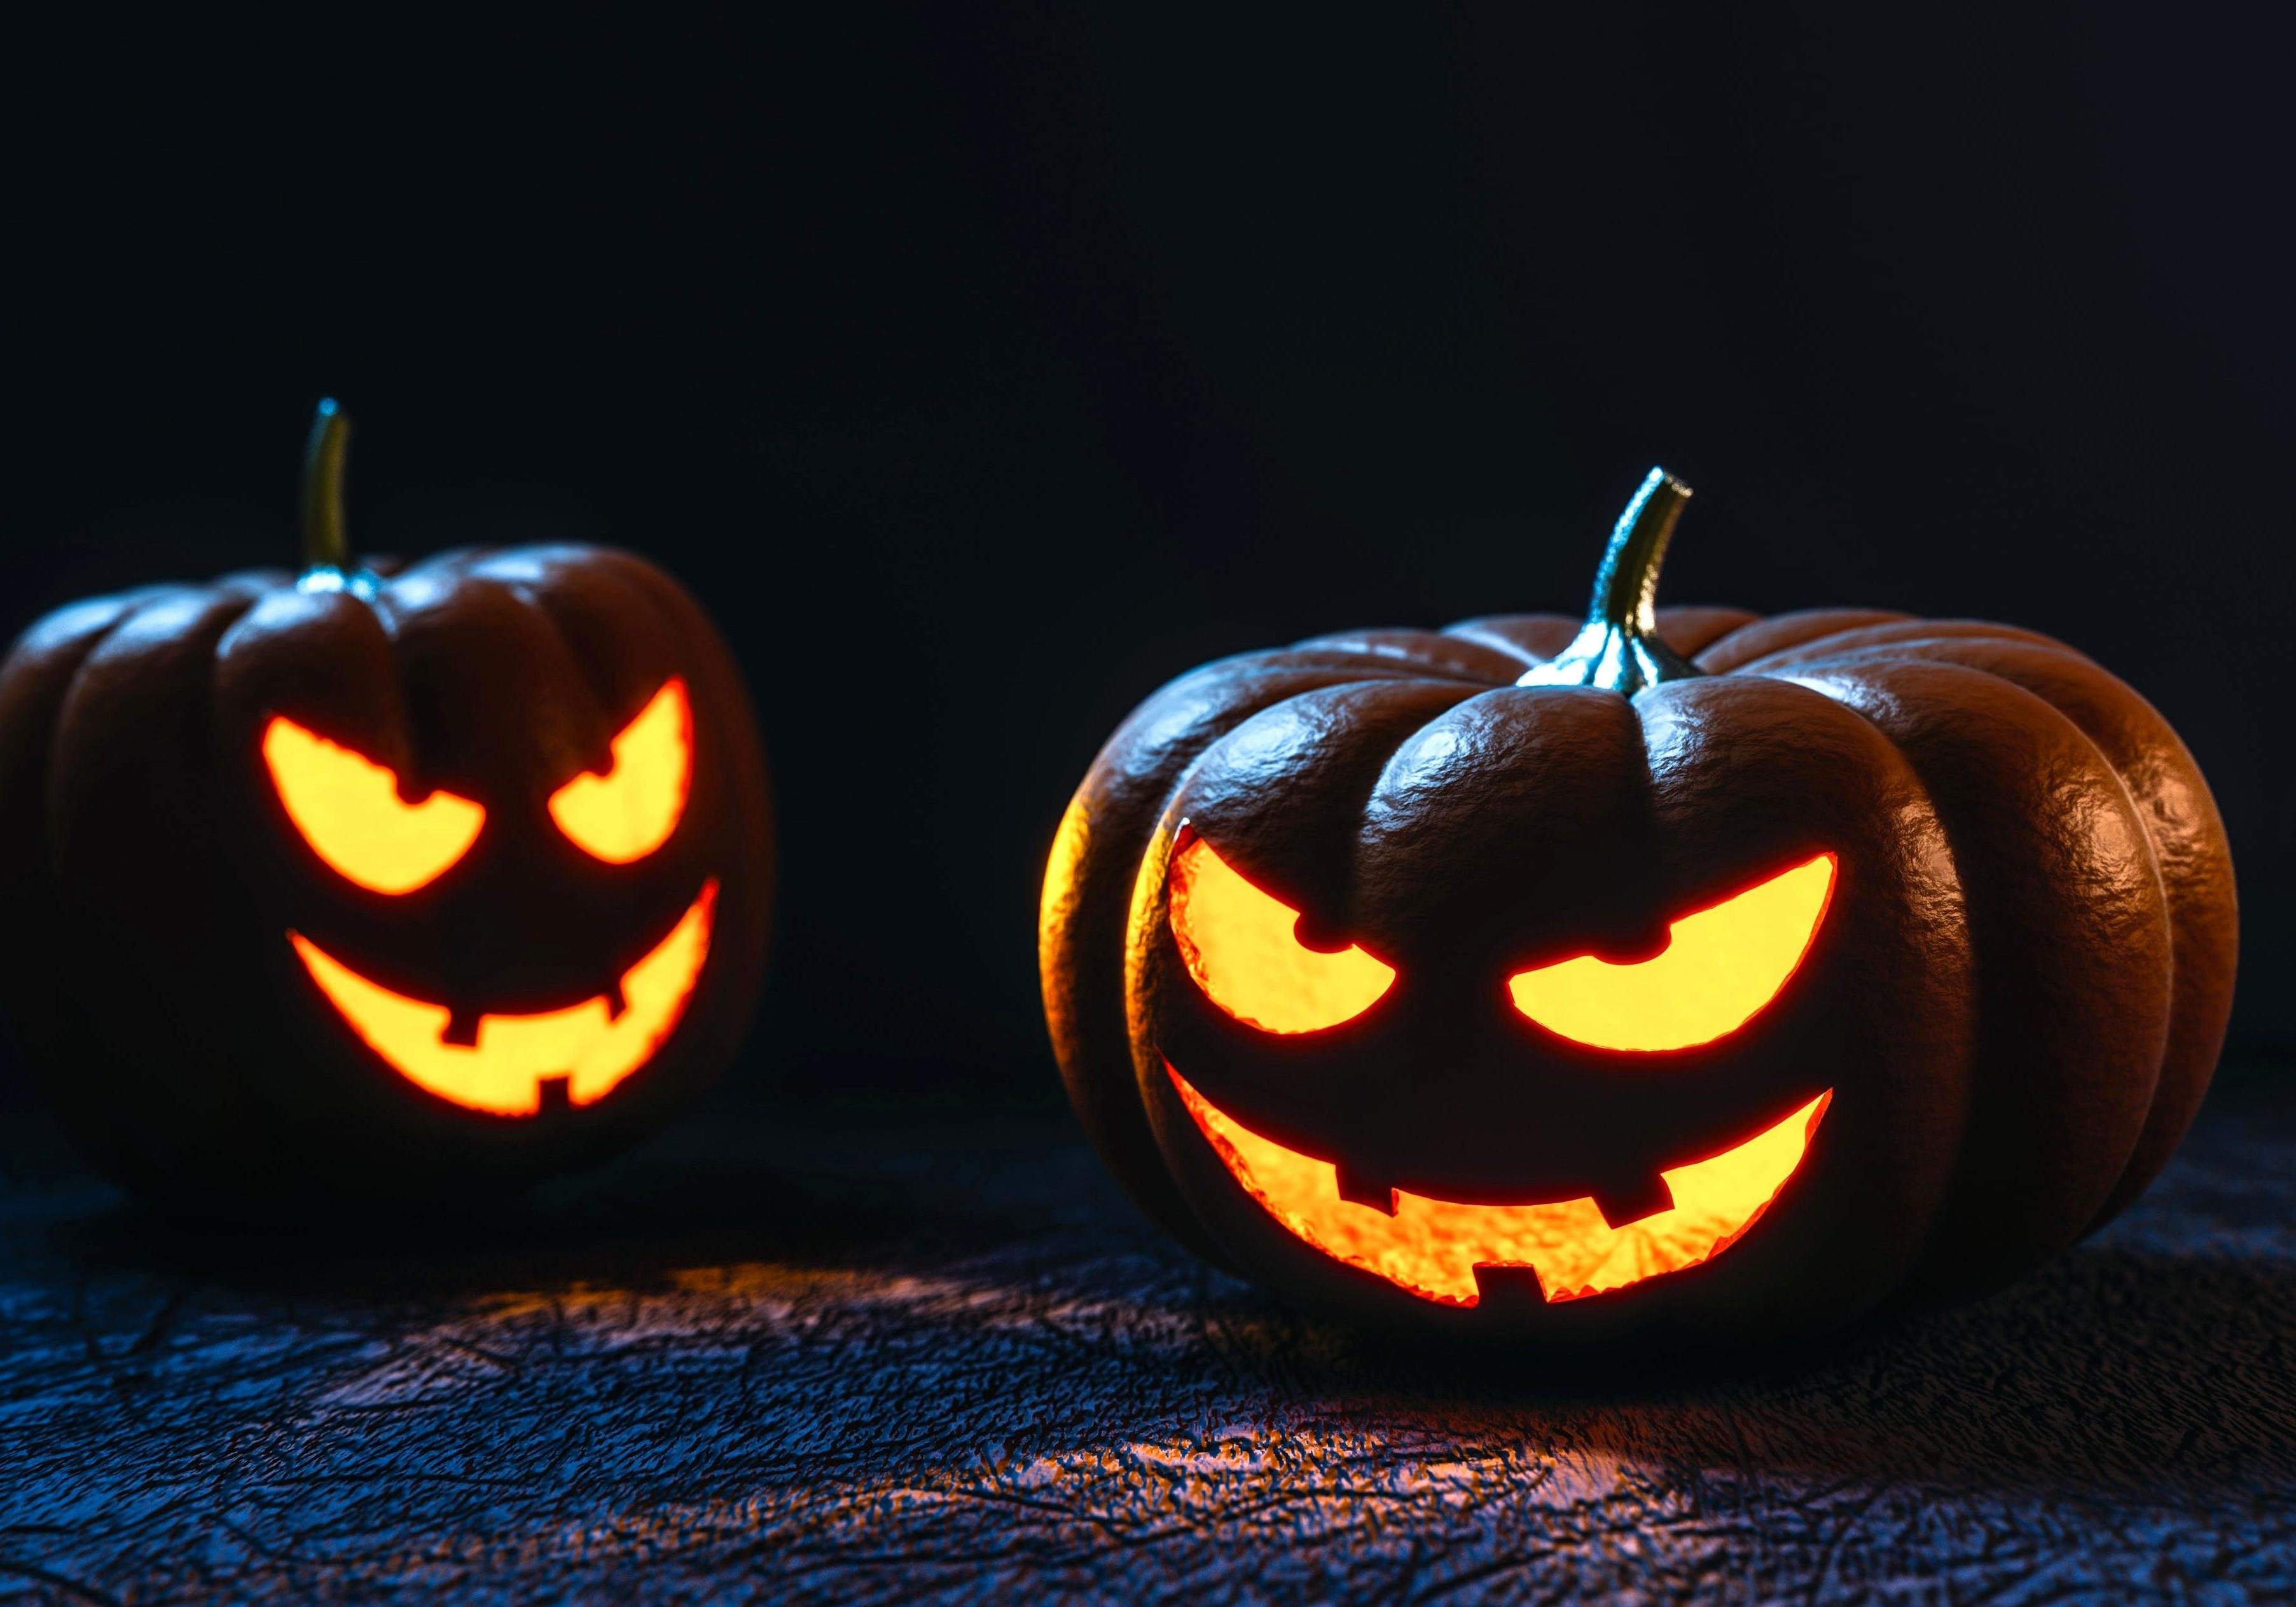 Free picture: Halloween, holiday candles